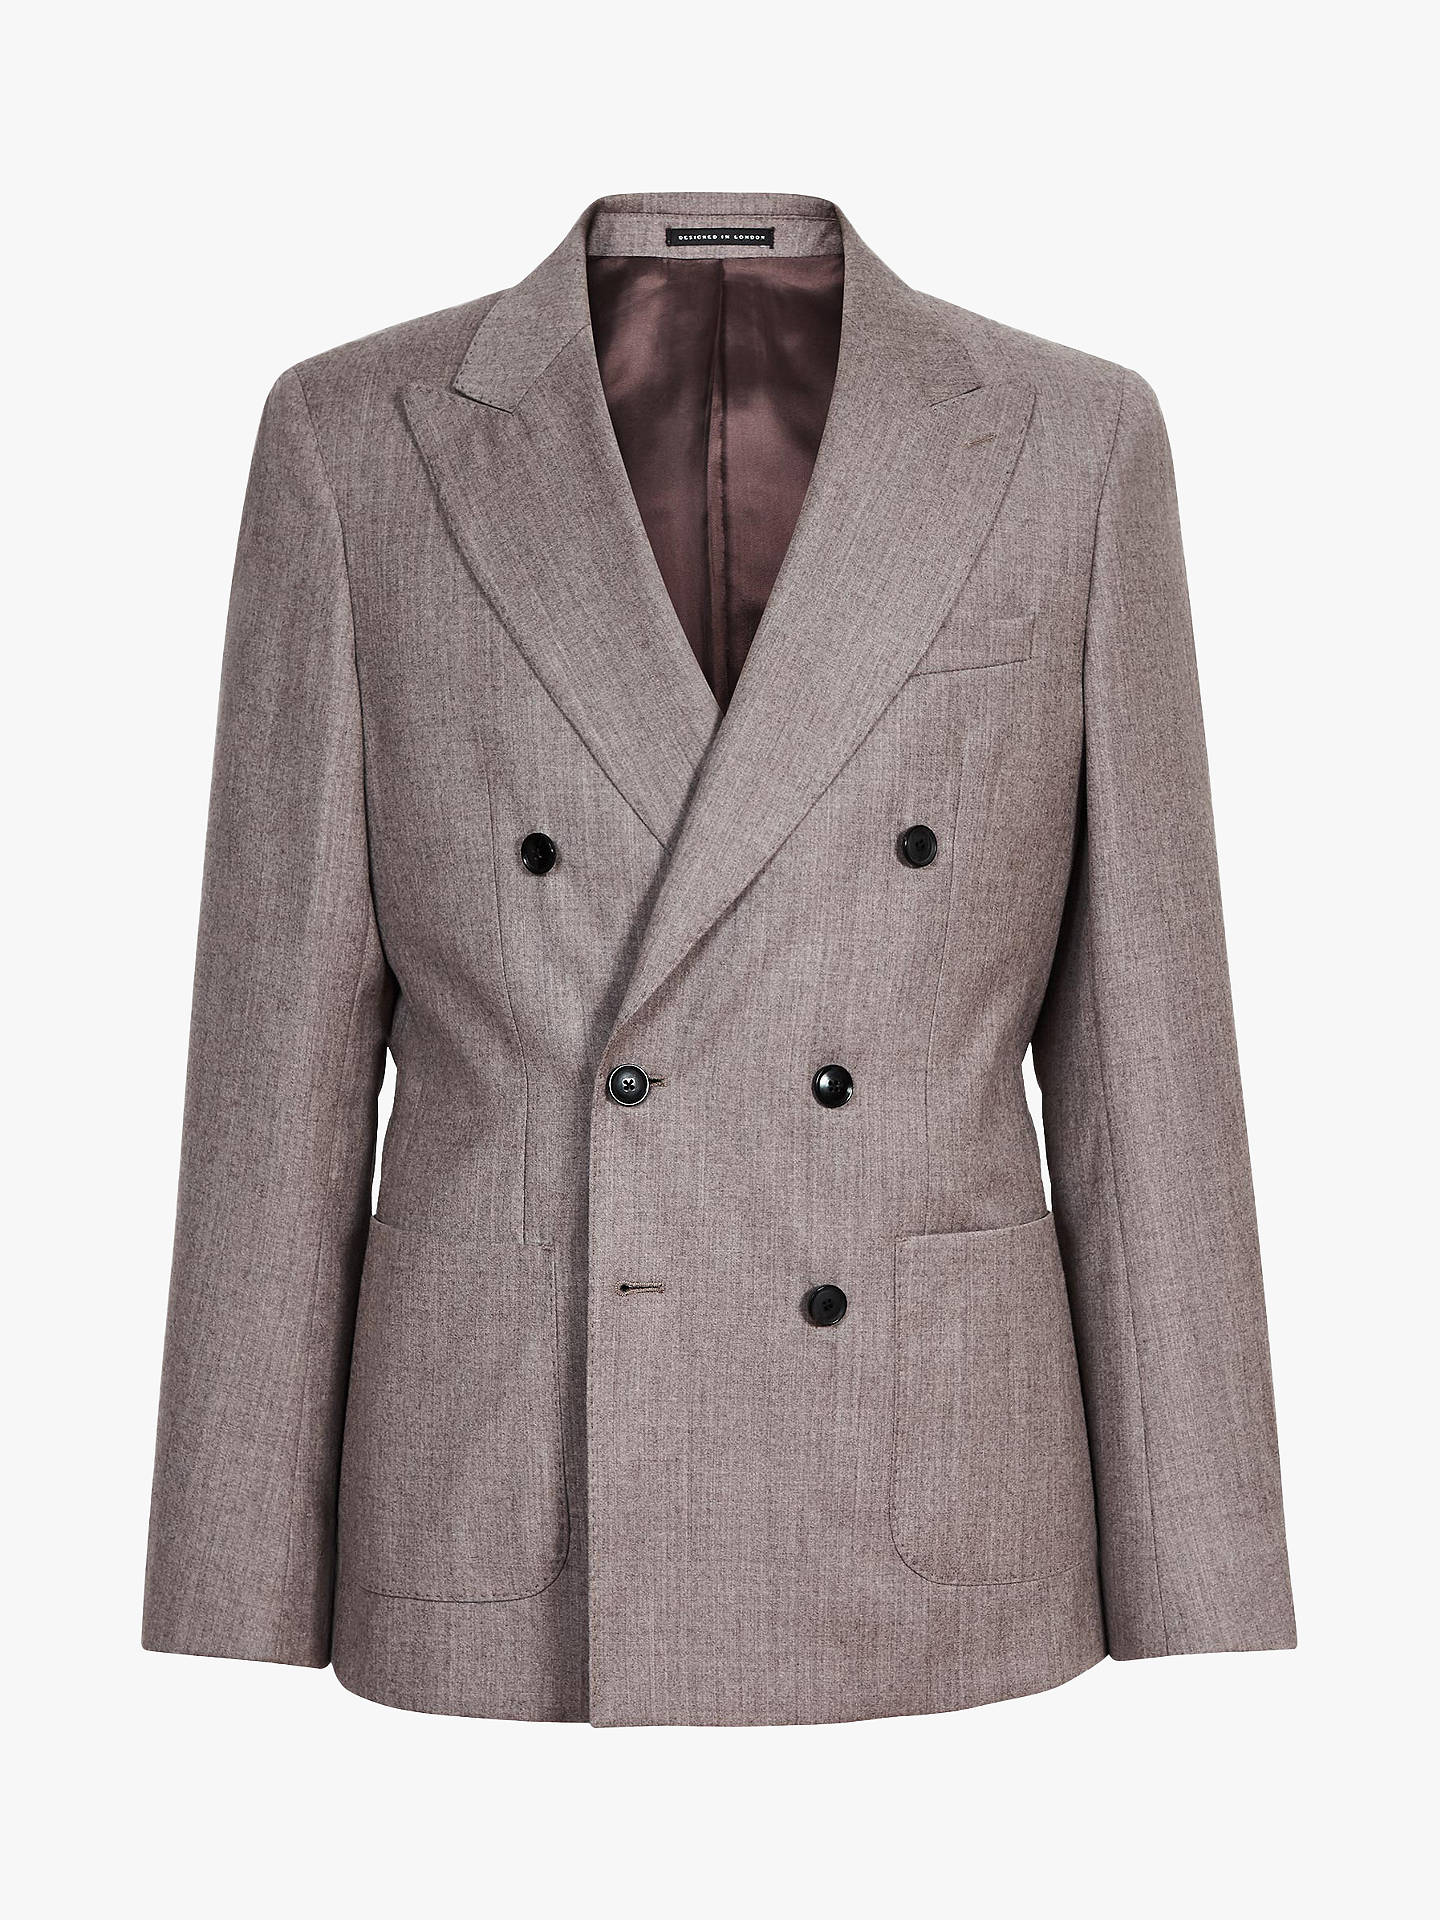 BuyReiss Welder Double Breasted Wool Slim Fit Suit Jacket, Taupe, 42R Online at johnlewis.com